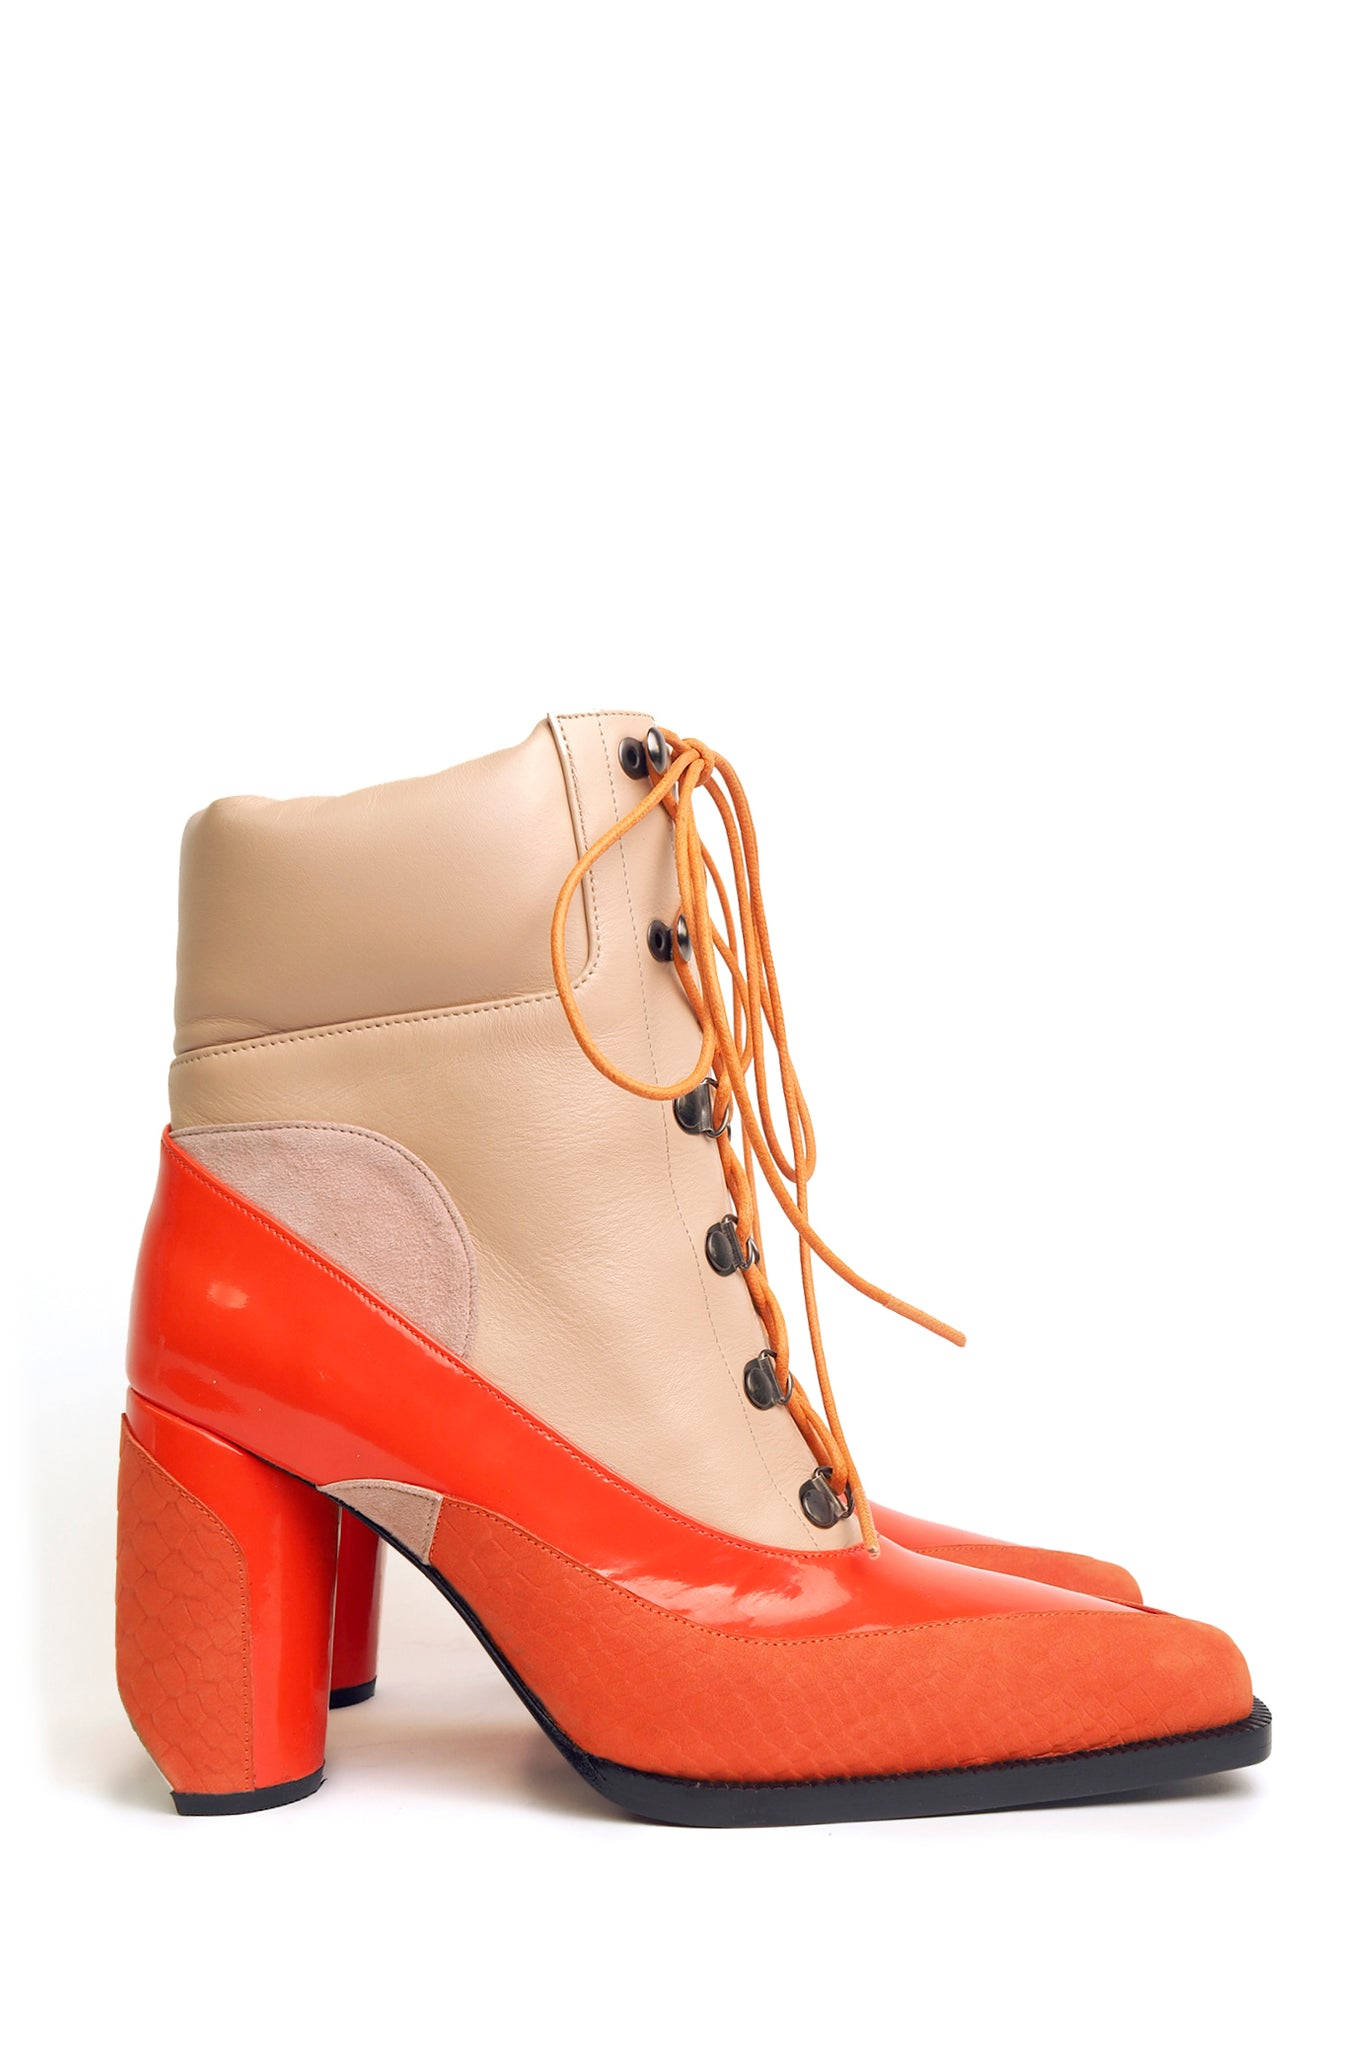 Orange and Nude Hiking Pumps 2.0